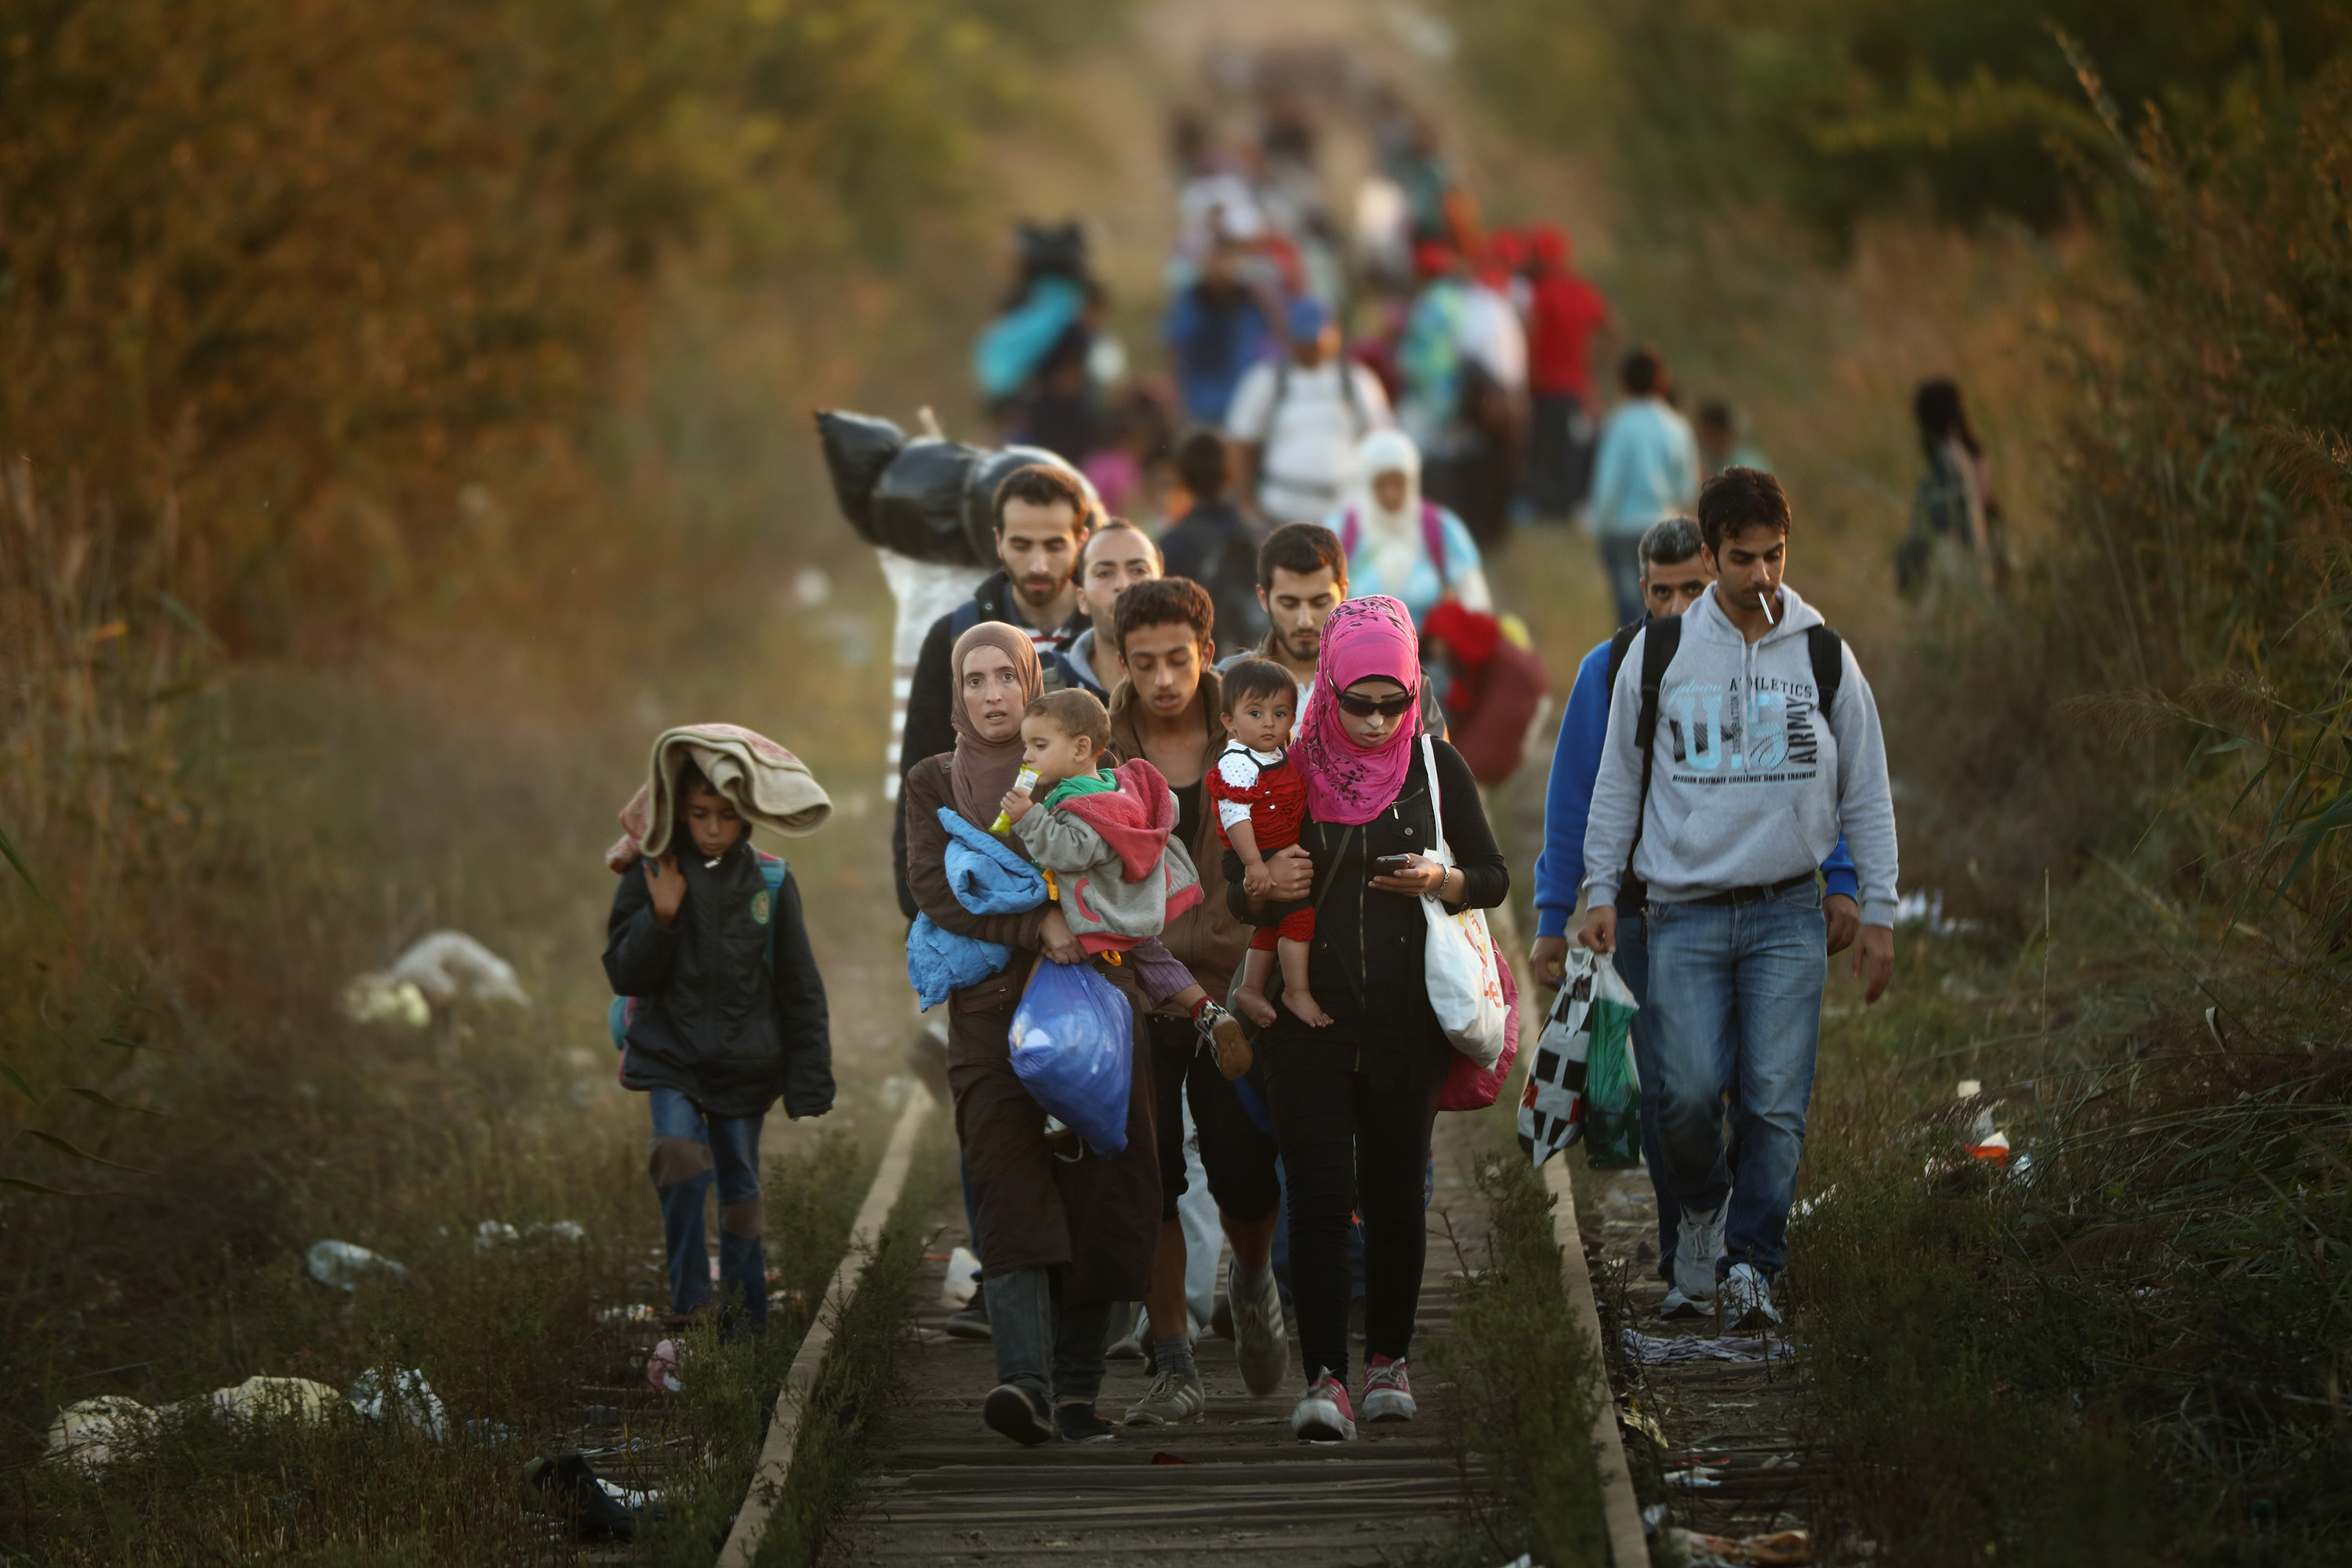 SUBOTICA, SERBIA - SEPTEMBER 09:  Migrants make their way through Serbia, near the town of Subotica, towards a break in the steel and razor fence erected on the  border by the Hungarian government on September 9, 2015 in Subotica, Serbia. Thousands of migrants have funnelled their way across country to the small gap in the steel fence unopposed by the authorities.  Since the beginning of 2015 the number of migrants using the so-called 'Balkans route' has exploded with migrants arriving in Greece from Turkey and then travelling on through Macedonia and Serbia before entering the EU via Hungary. The number of people leaving their homes in war torn countries such as Syria, marks the largest migration of people since World War II.  (Photo by Christopher Furlong/Getty Images)